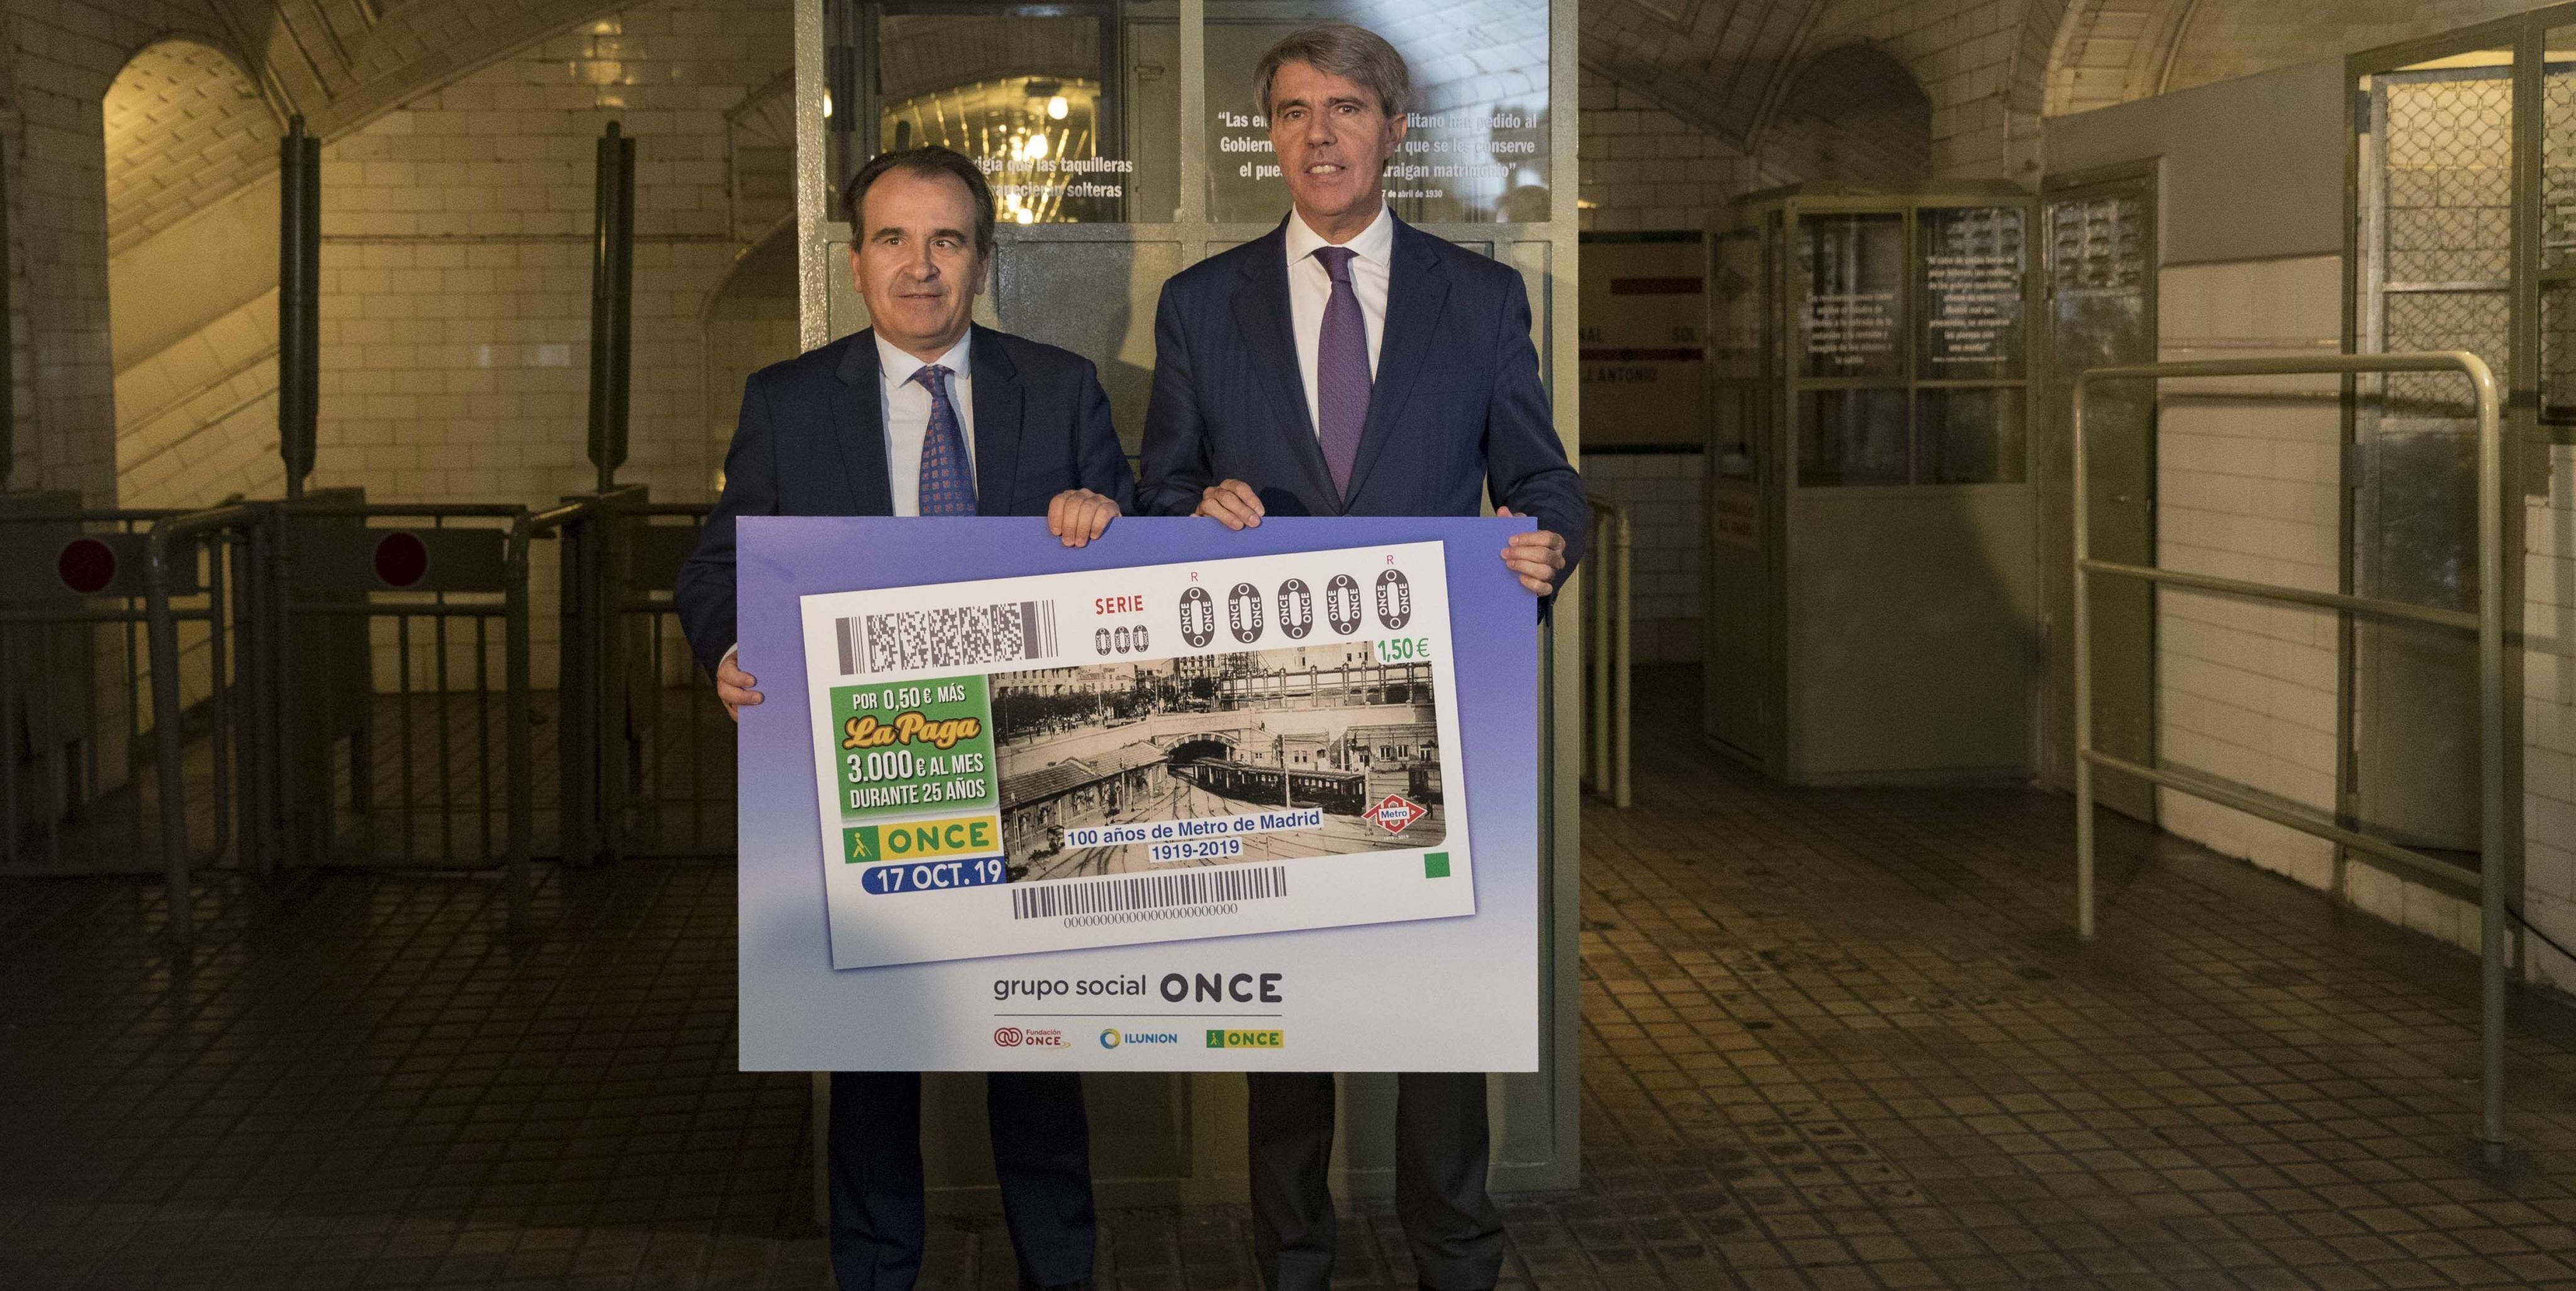 Presentation of the ONCE coupon, commemorating the centenary of Metro de Madrid